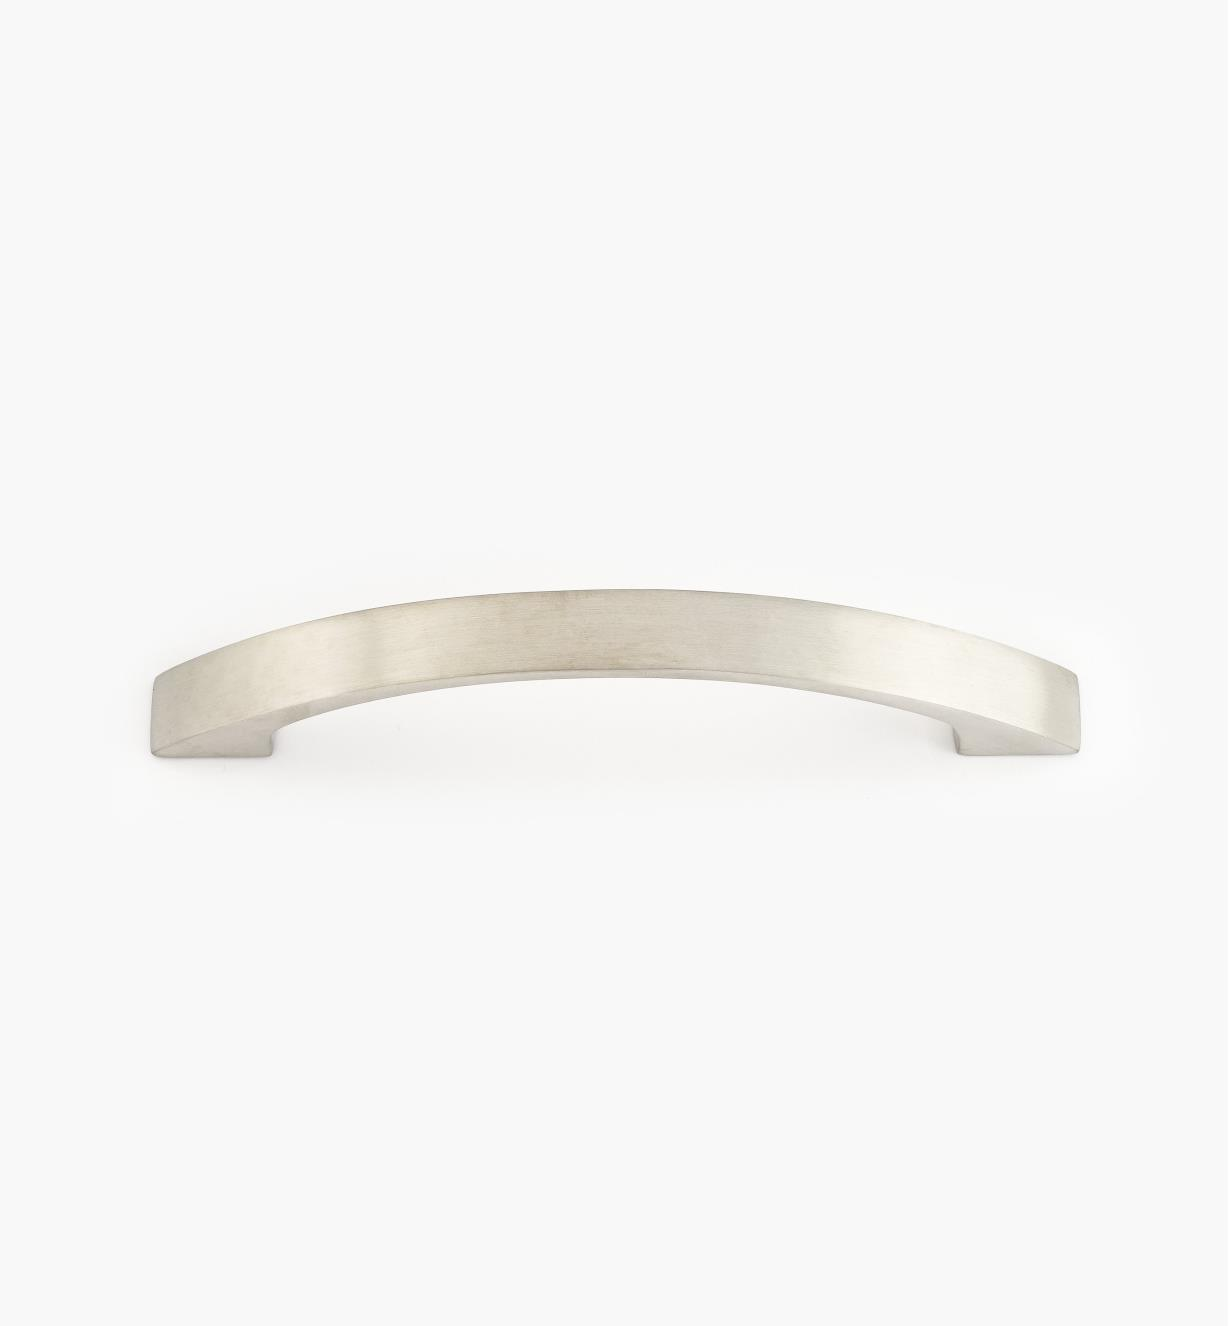 01W8142 - 128mm Thick Arch Stainless-Steel Handle (15mm)